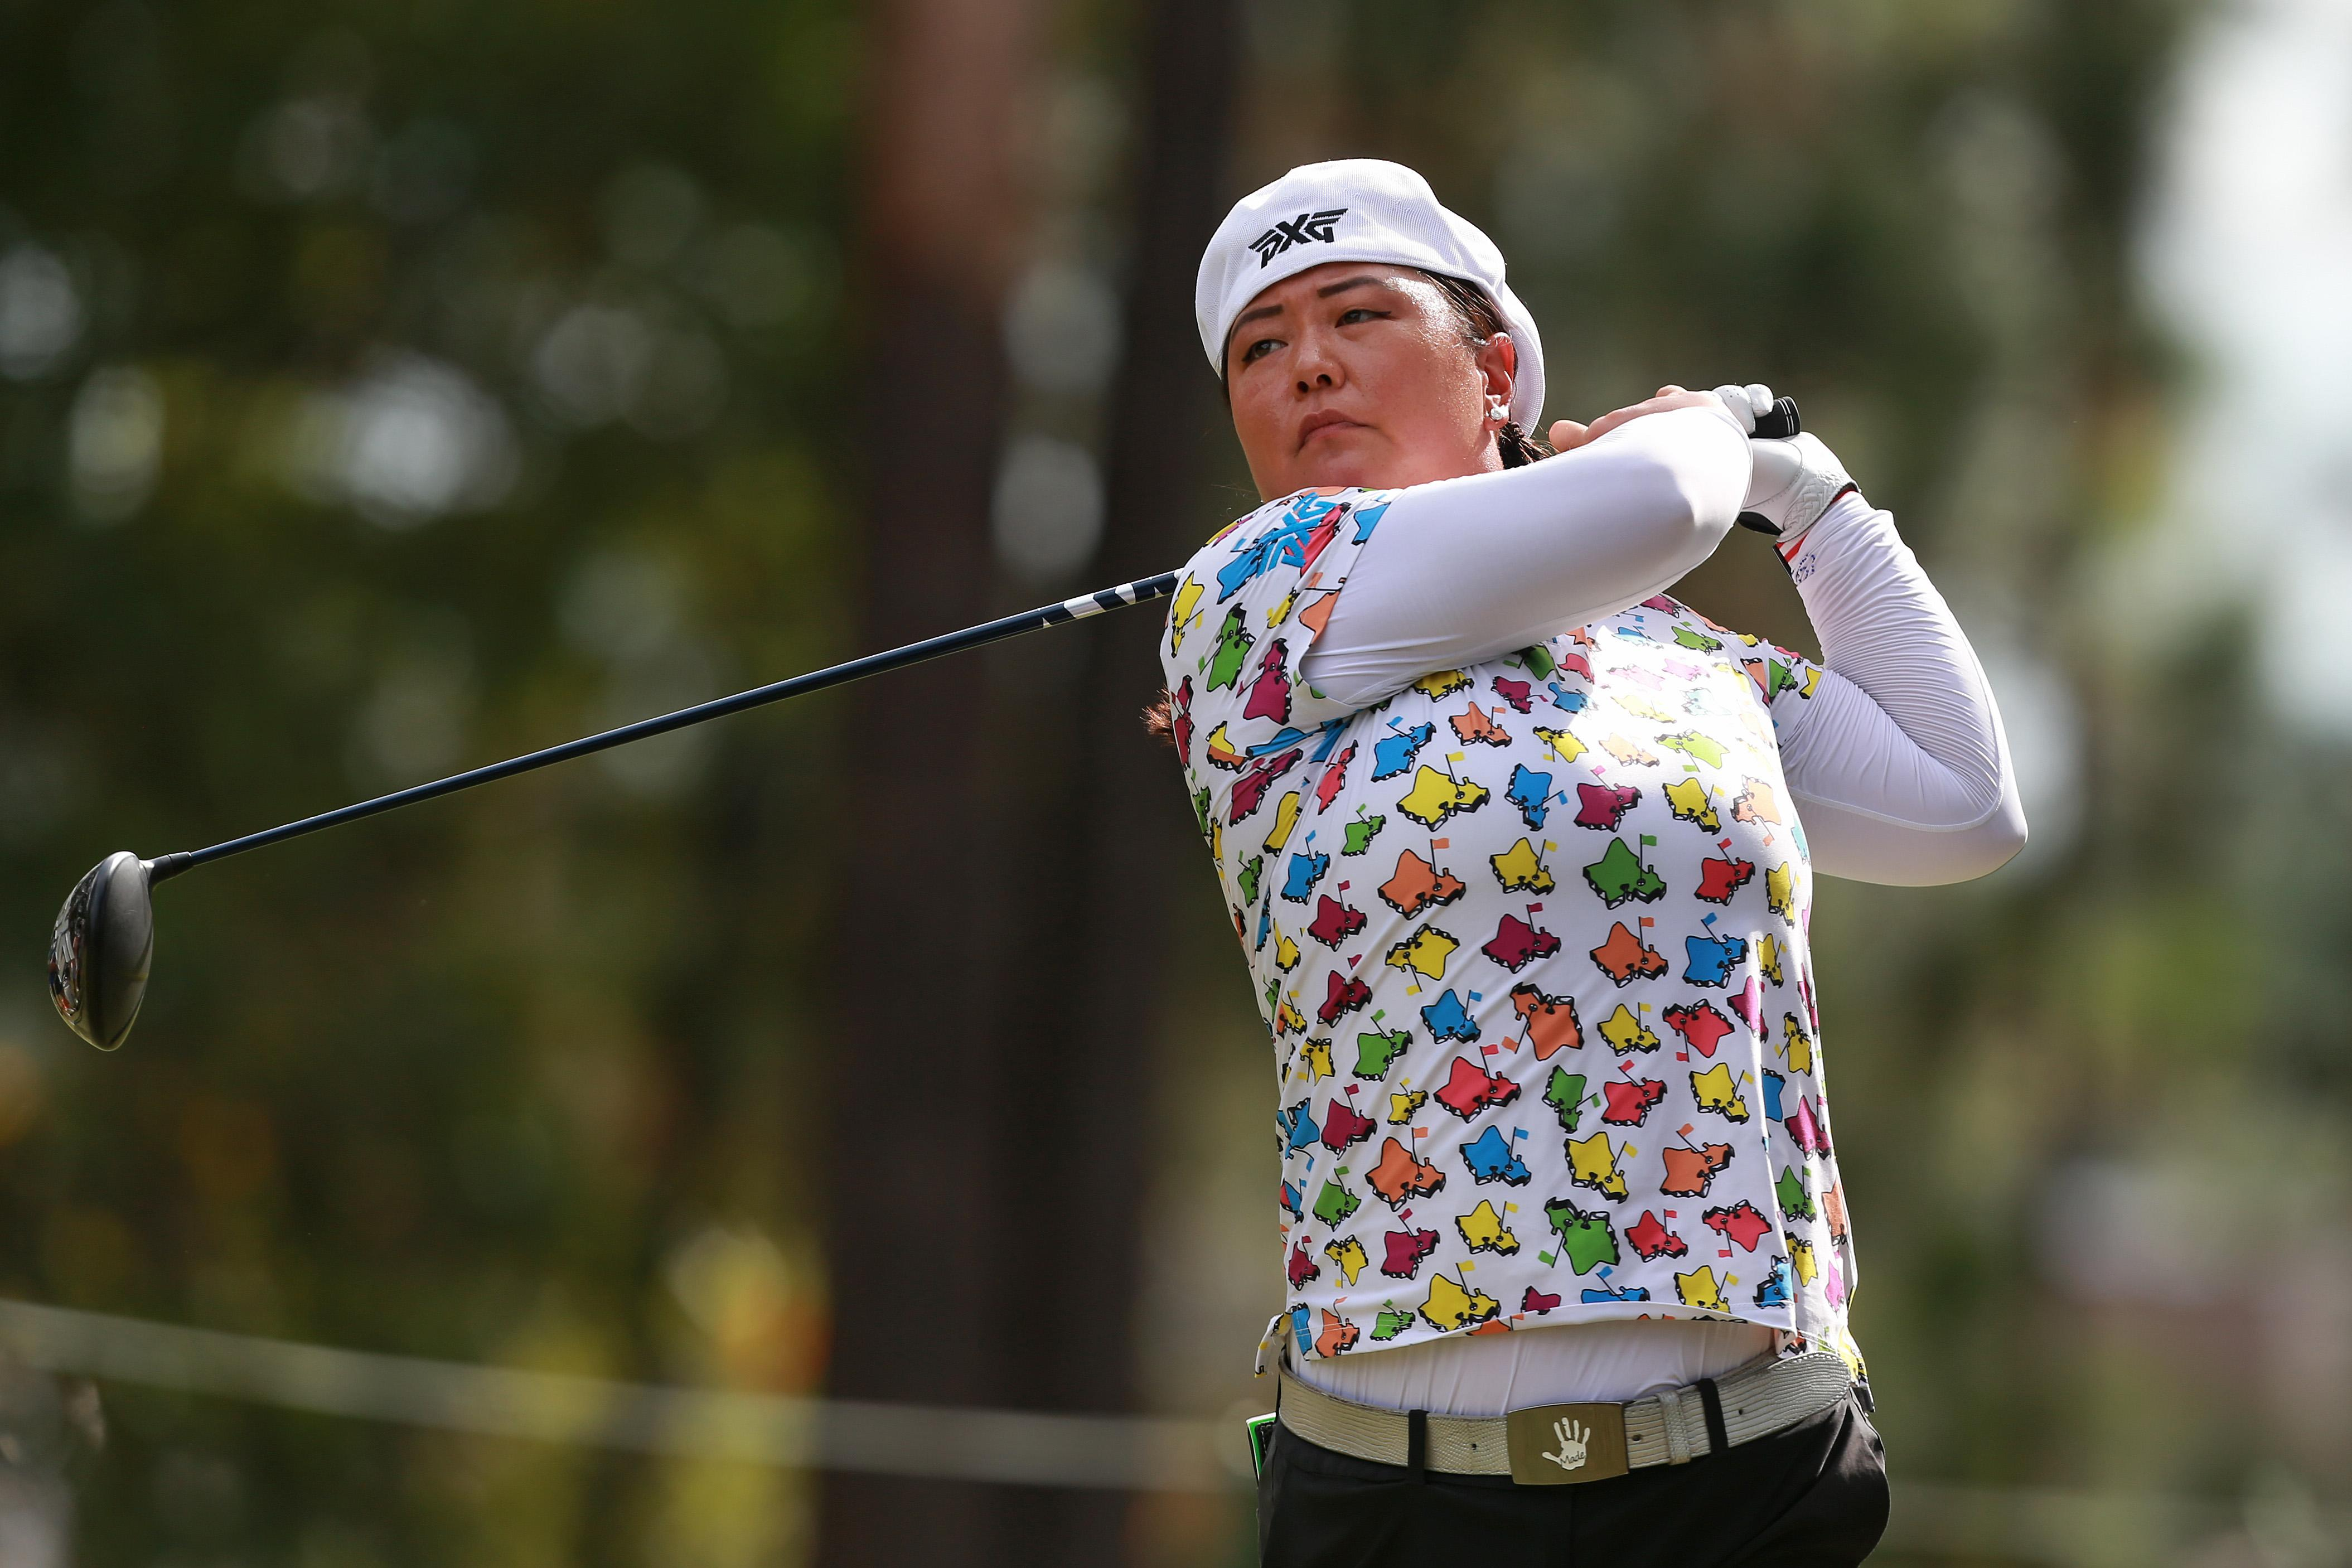 Bizarre rules violation costs two LPGA players a shot at Tour cards 1